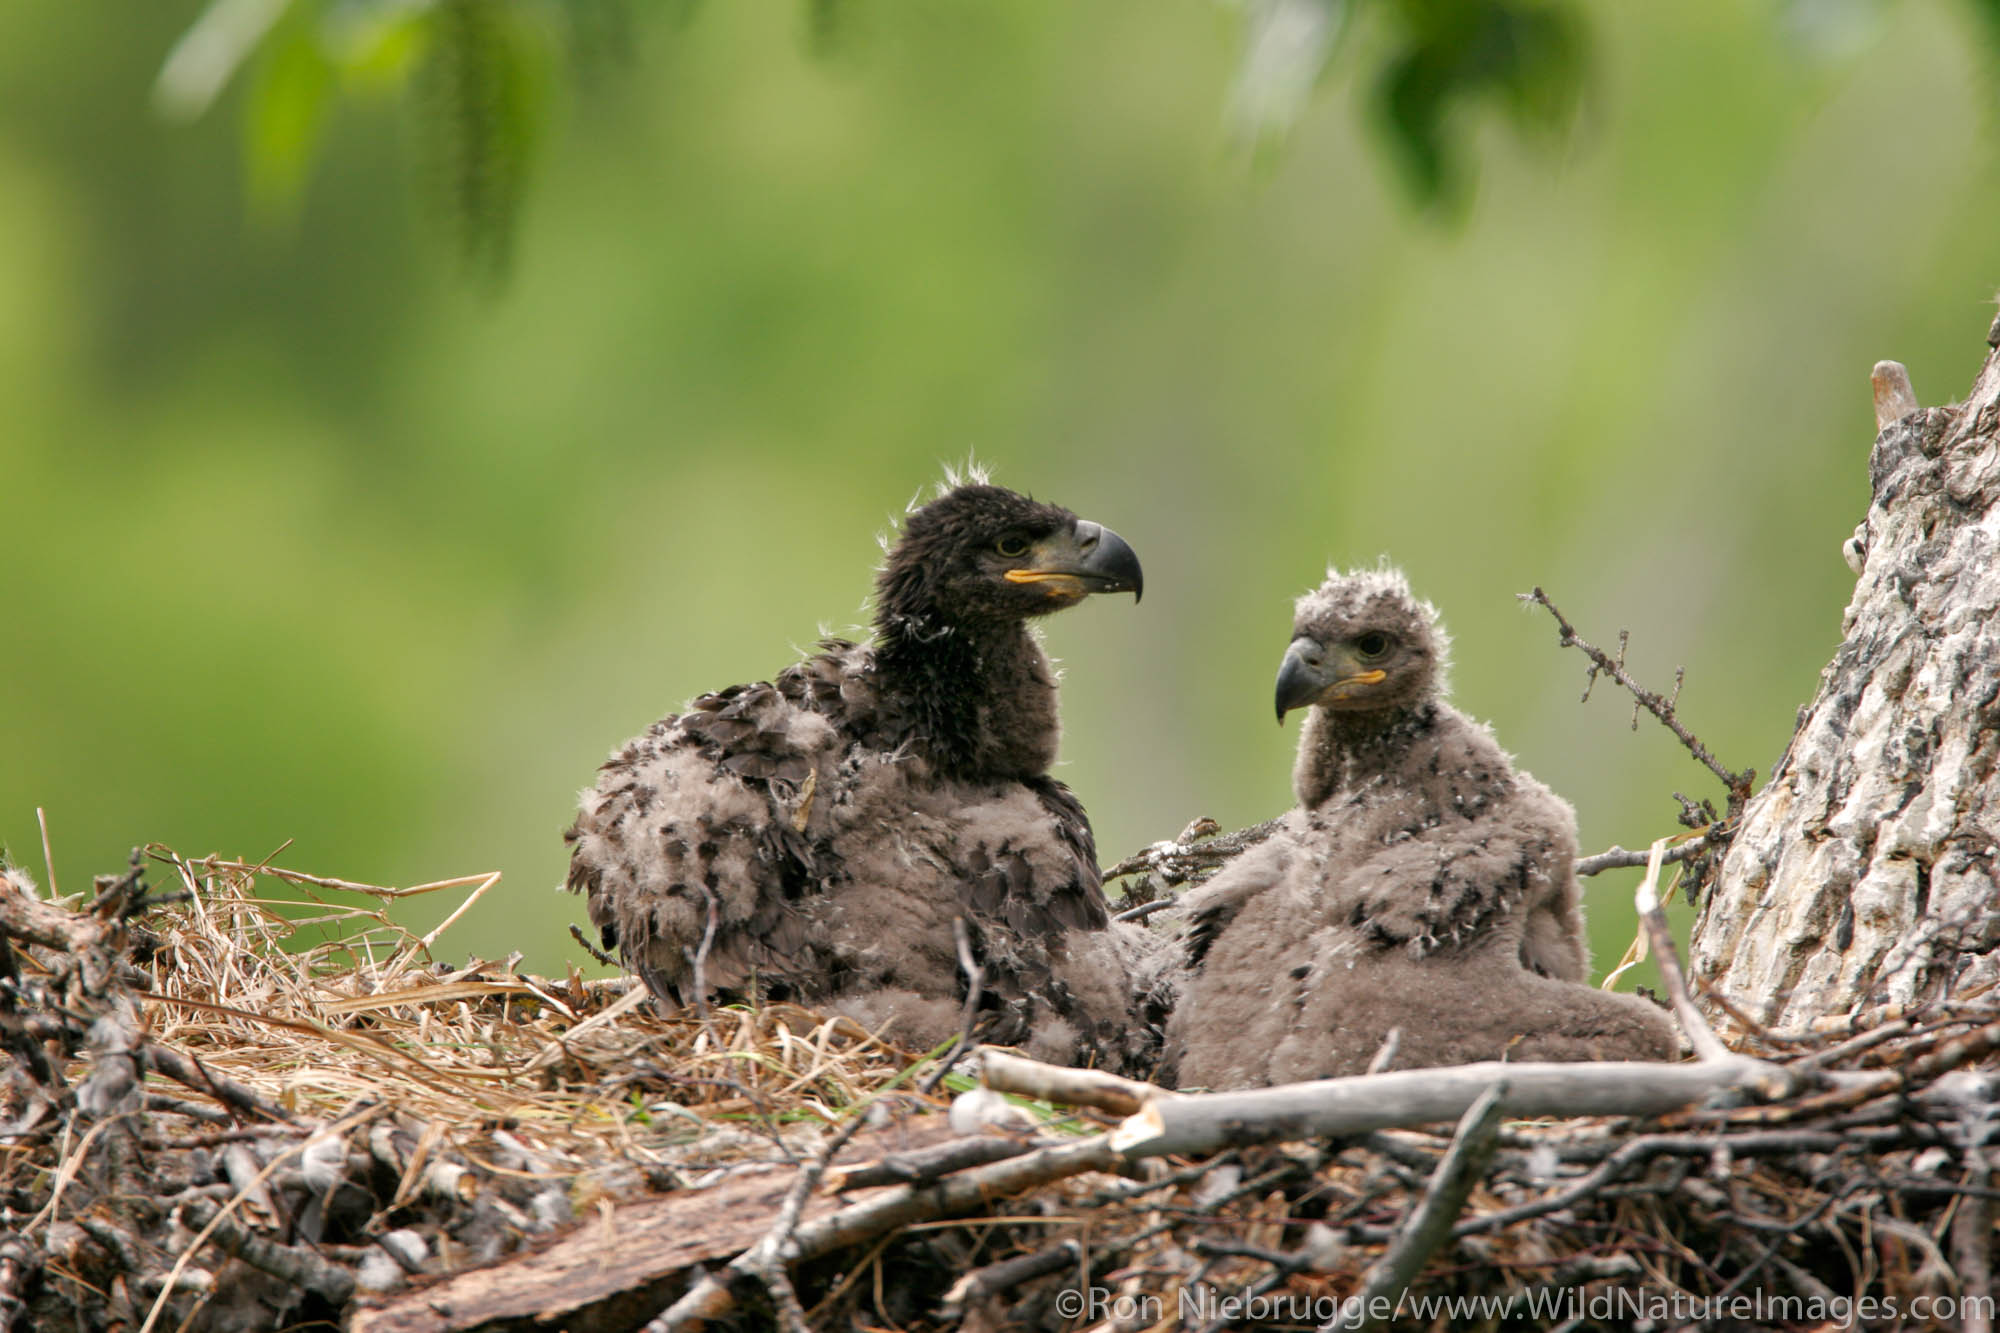 Nesting Bald Eagle chicks at about one month old, Anchorage, Alaska.